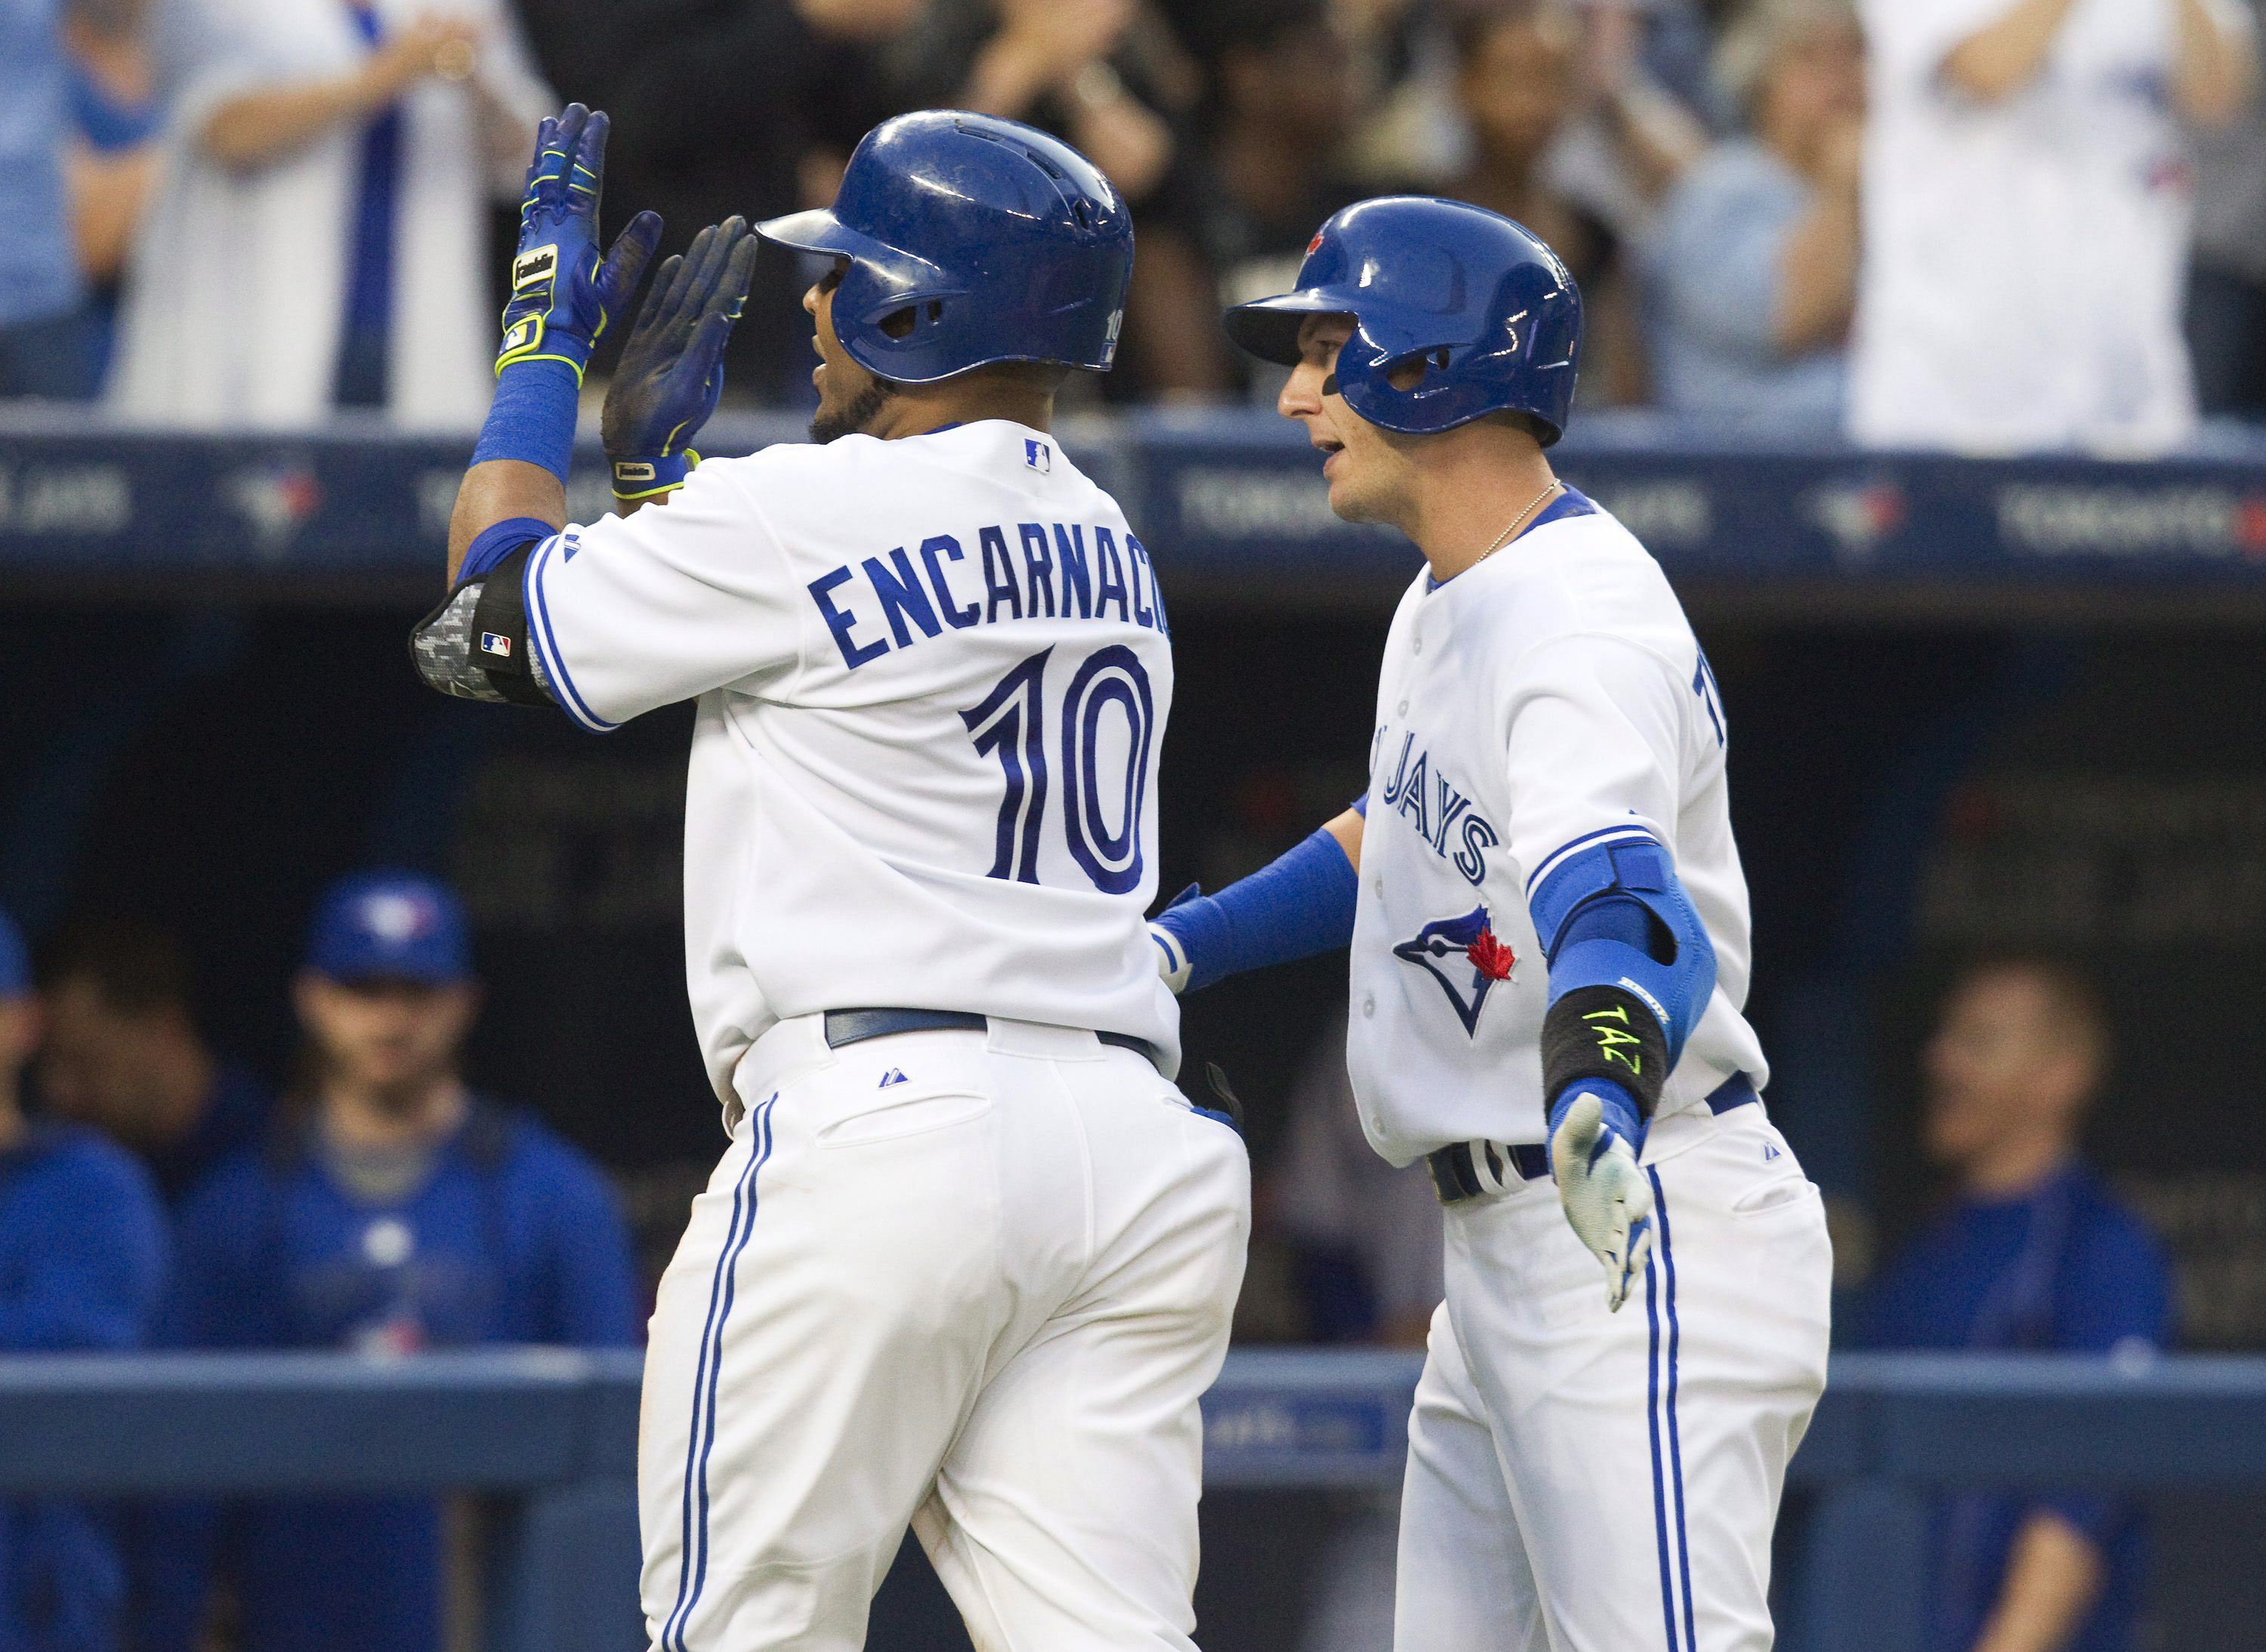 Toronto Blue Jays' Edwin Encarnacion, left, is greeted by teammate Troy Tulowitzki after hitting a two-run home run during the third inning of a baseball game against the Minnesota Twins on Thursday, Aug. 6, 2015, in Toronto. (Fred Thornhill/The Canadian